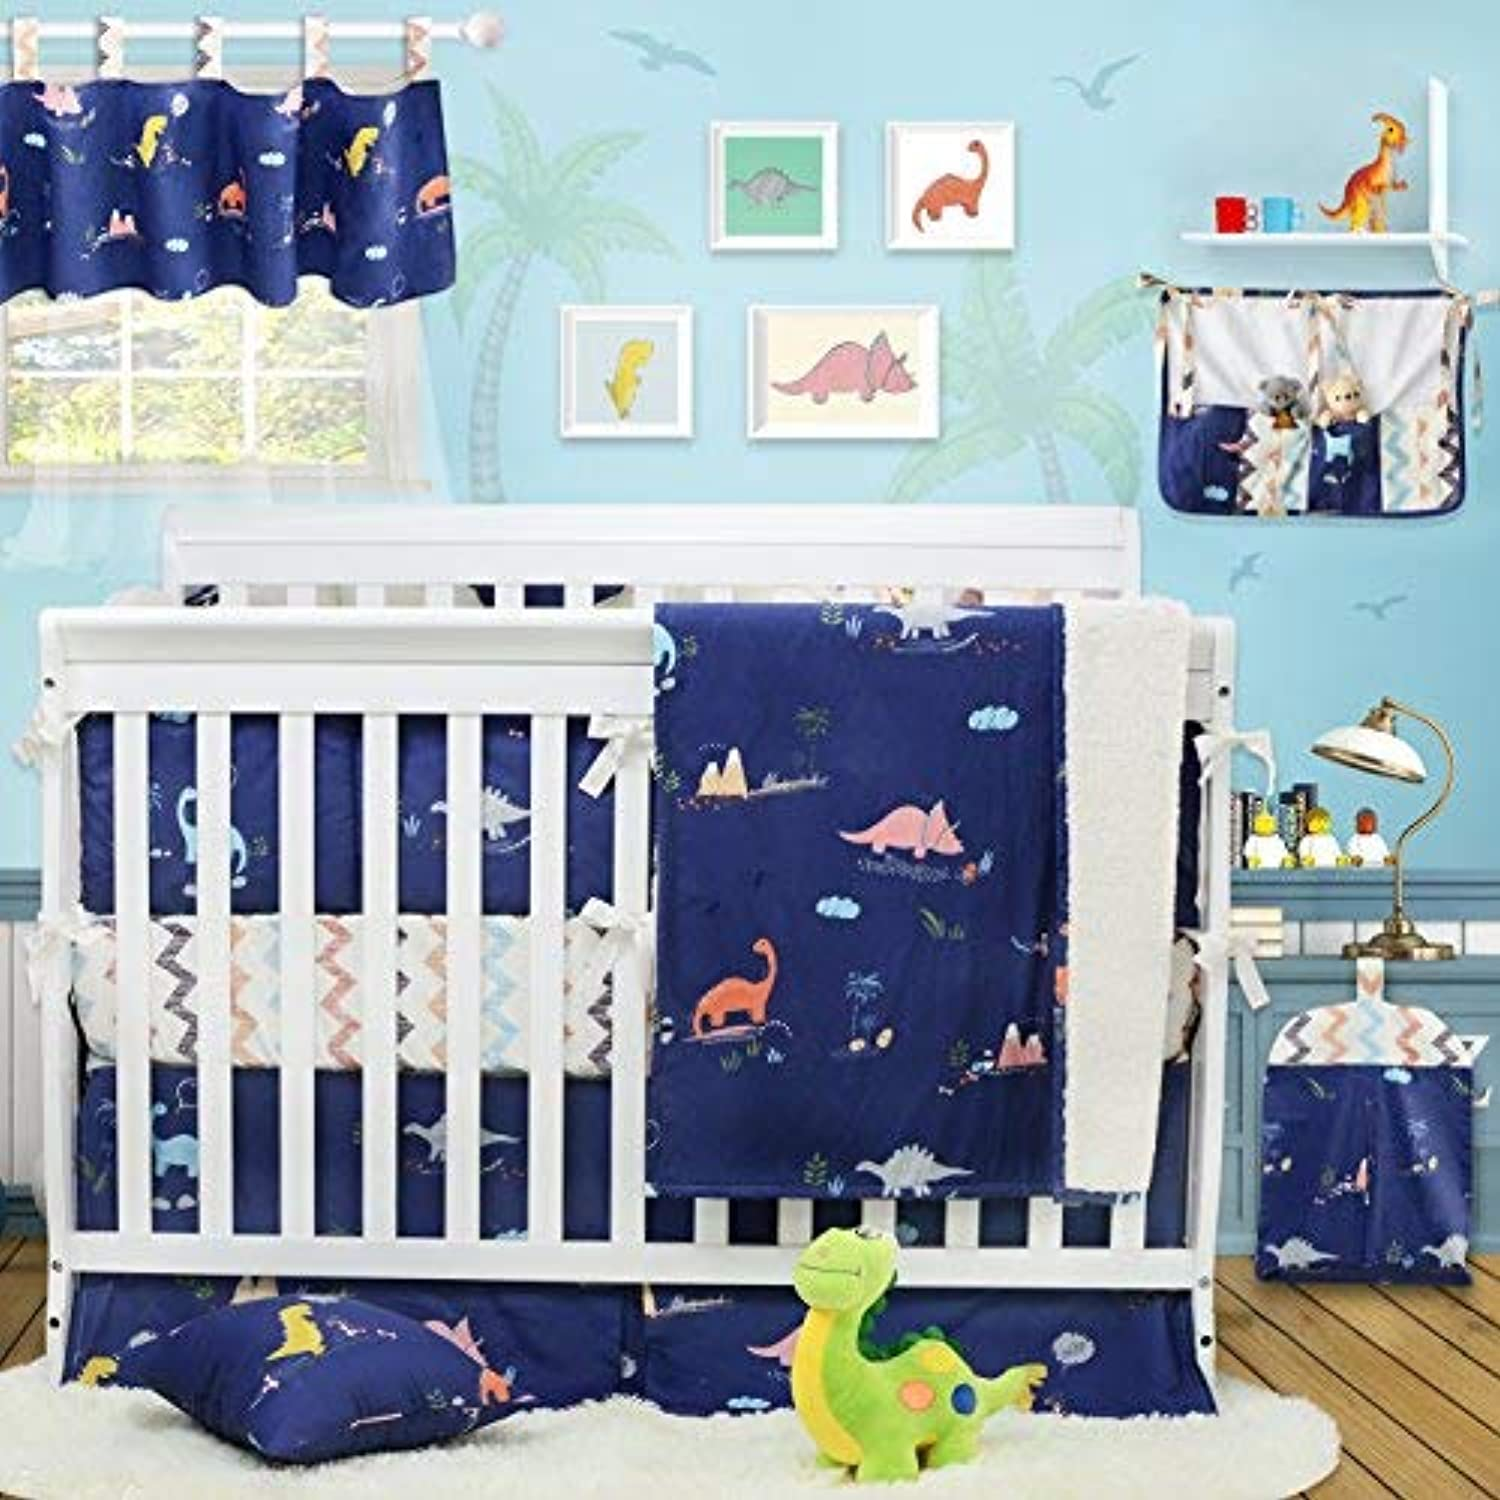 Brandream Dinosaur Crib Bedding with Bumper 100% Cotton Baby Bedding for Boys Blue & Chevron 11 Pieces [並行輸入品]